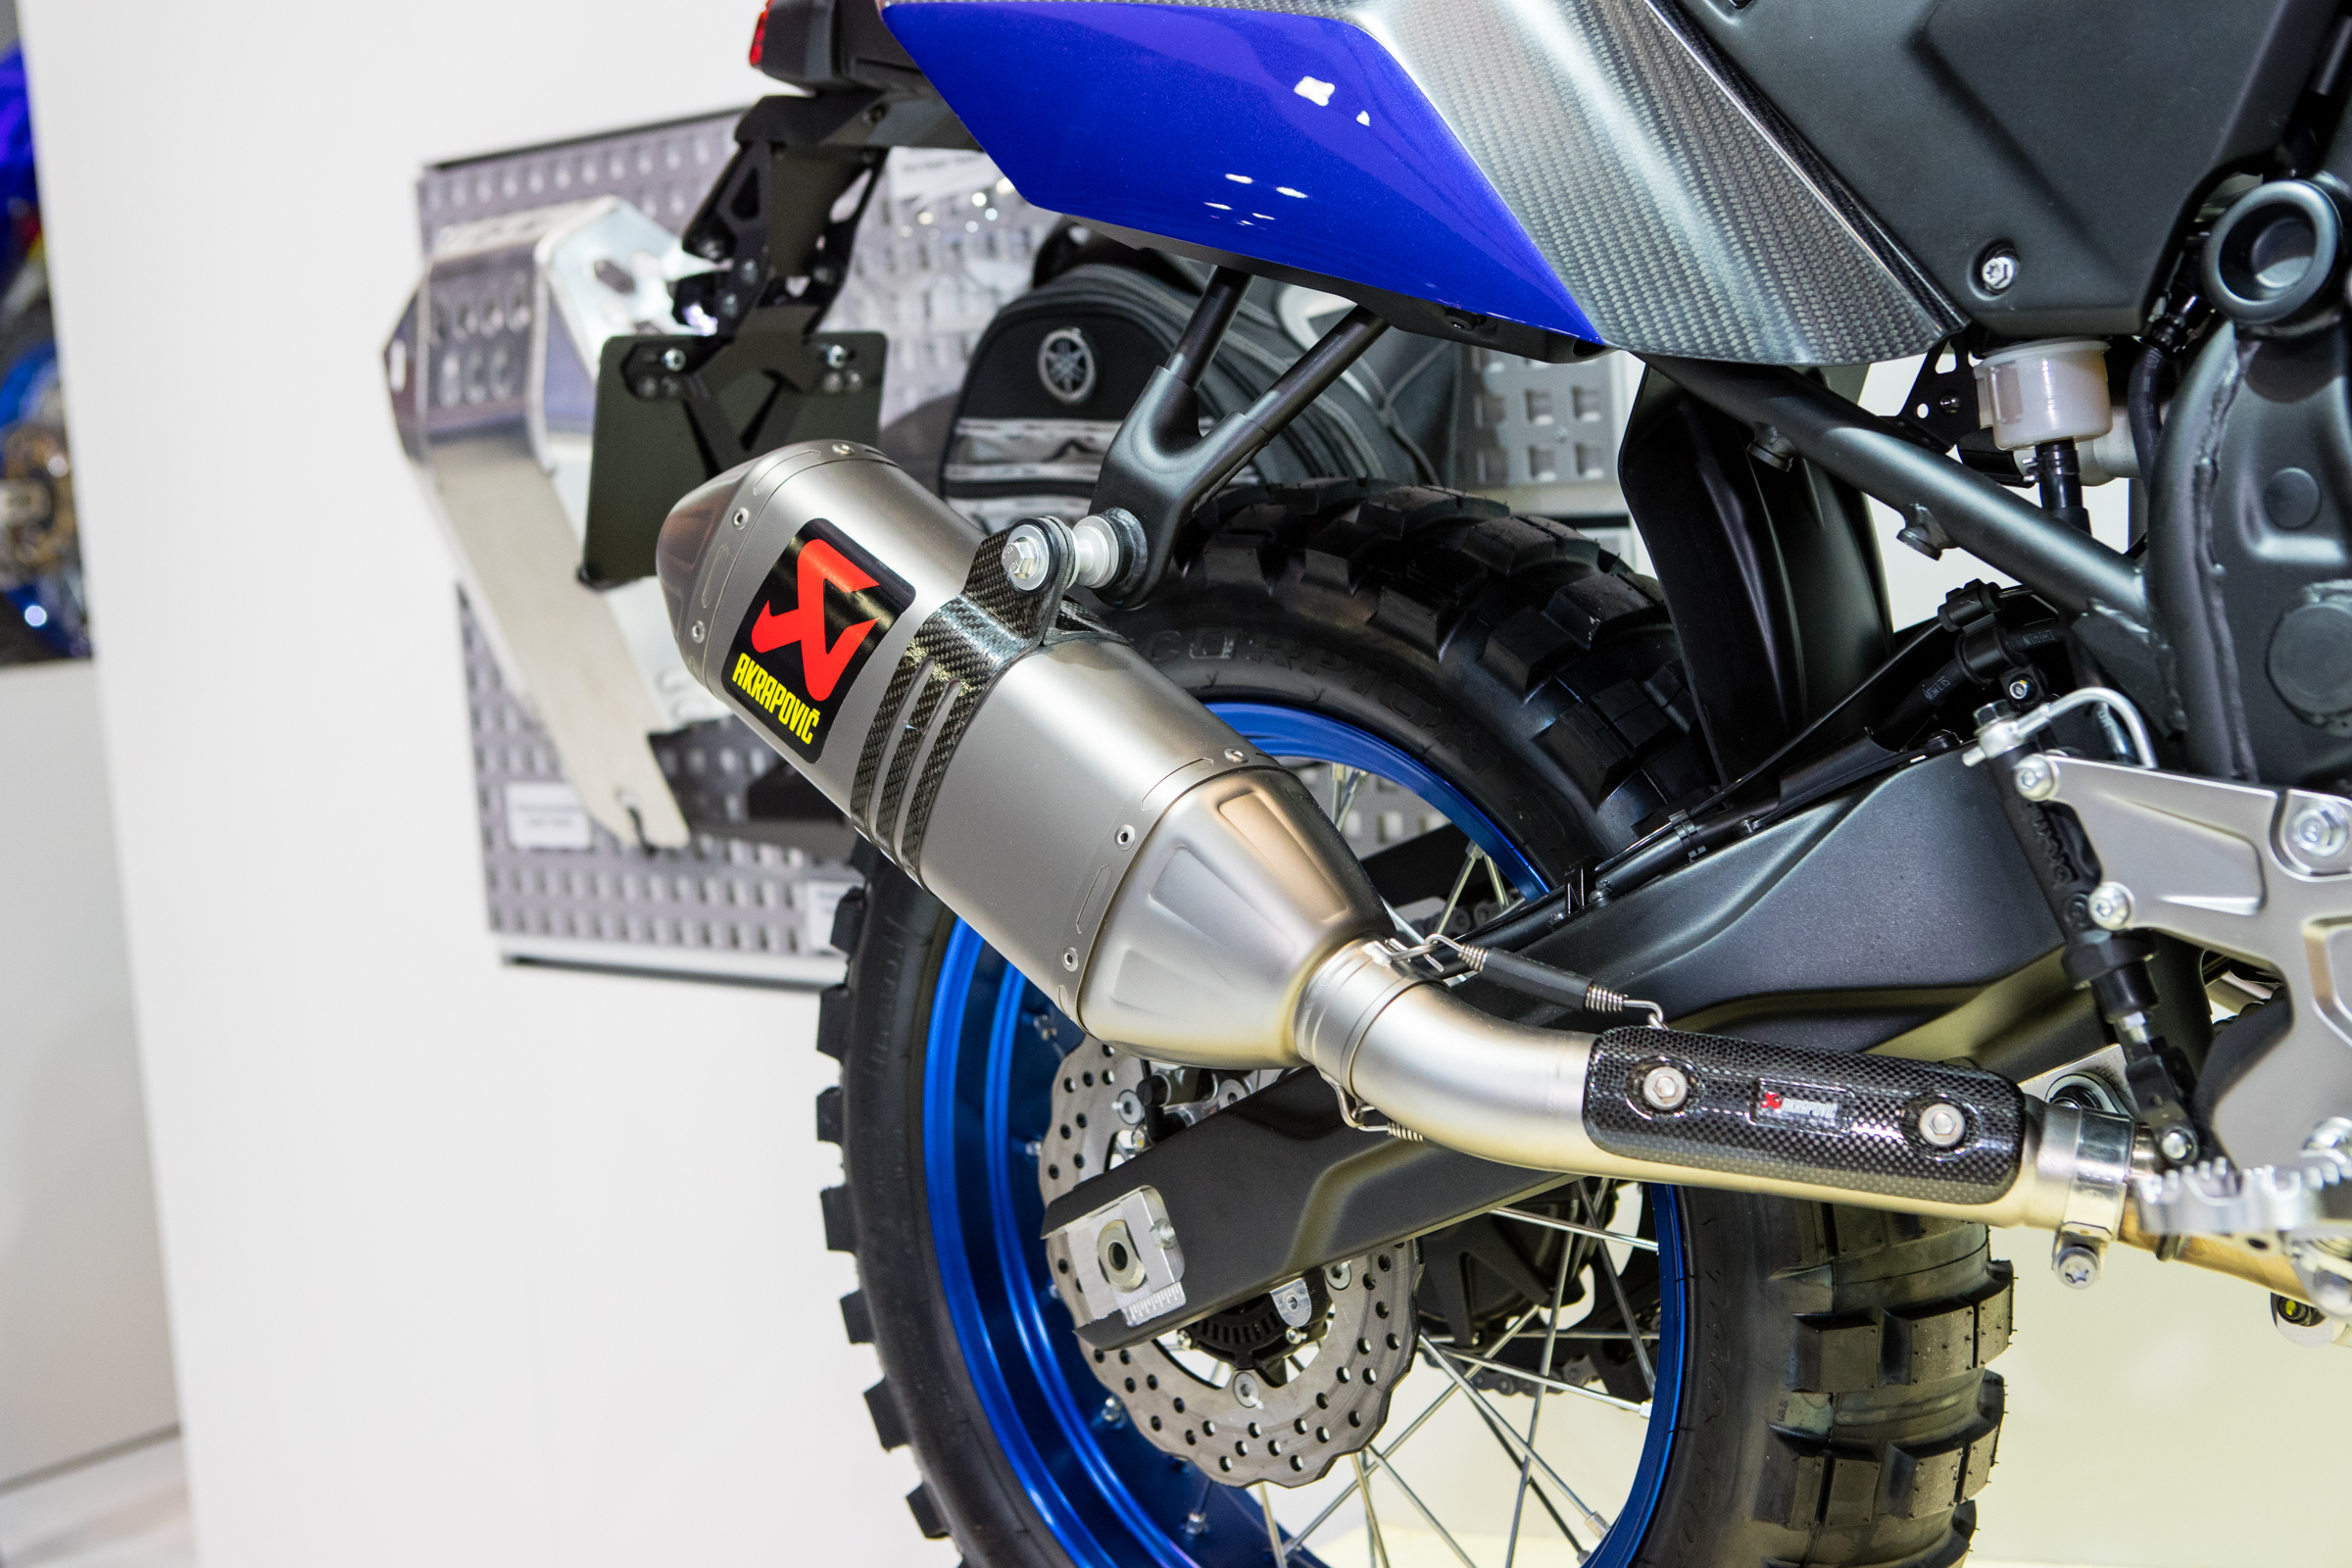 Featuring an Akrapovic rally inspired exhaust system and mounting point.